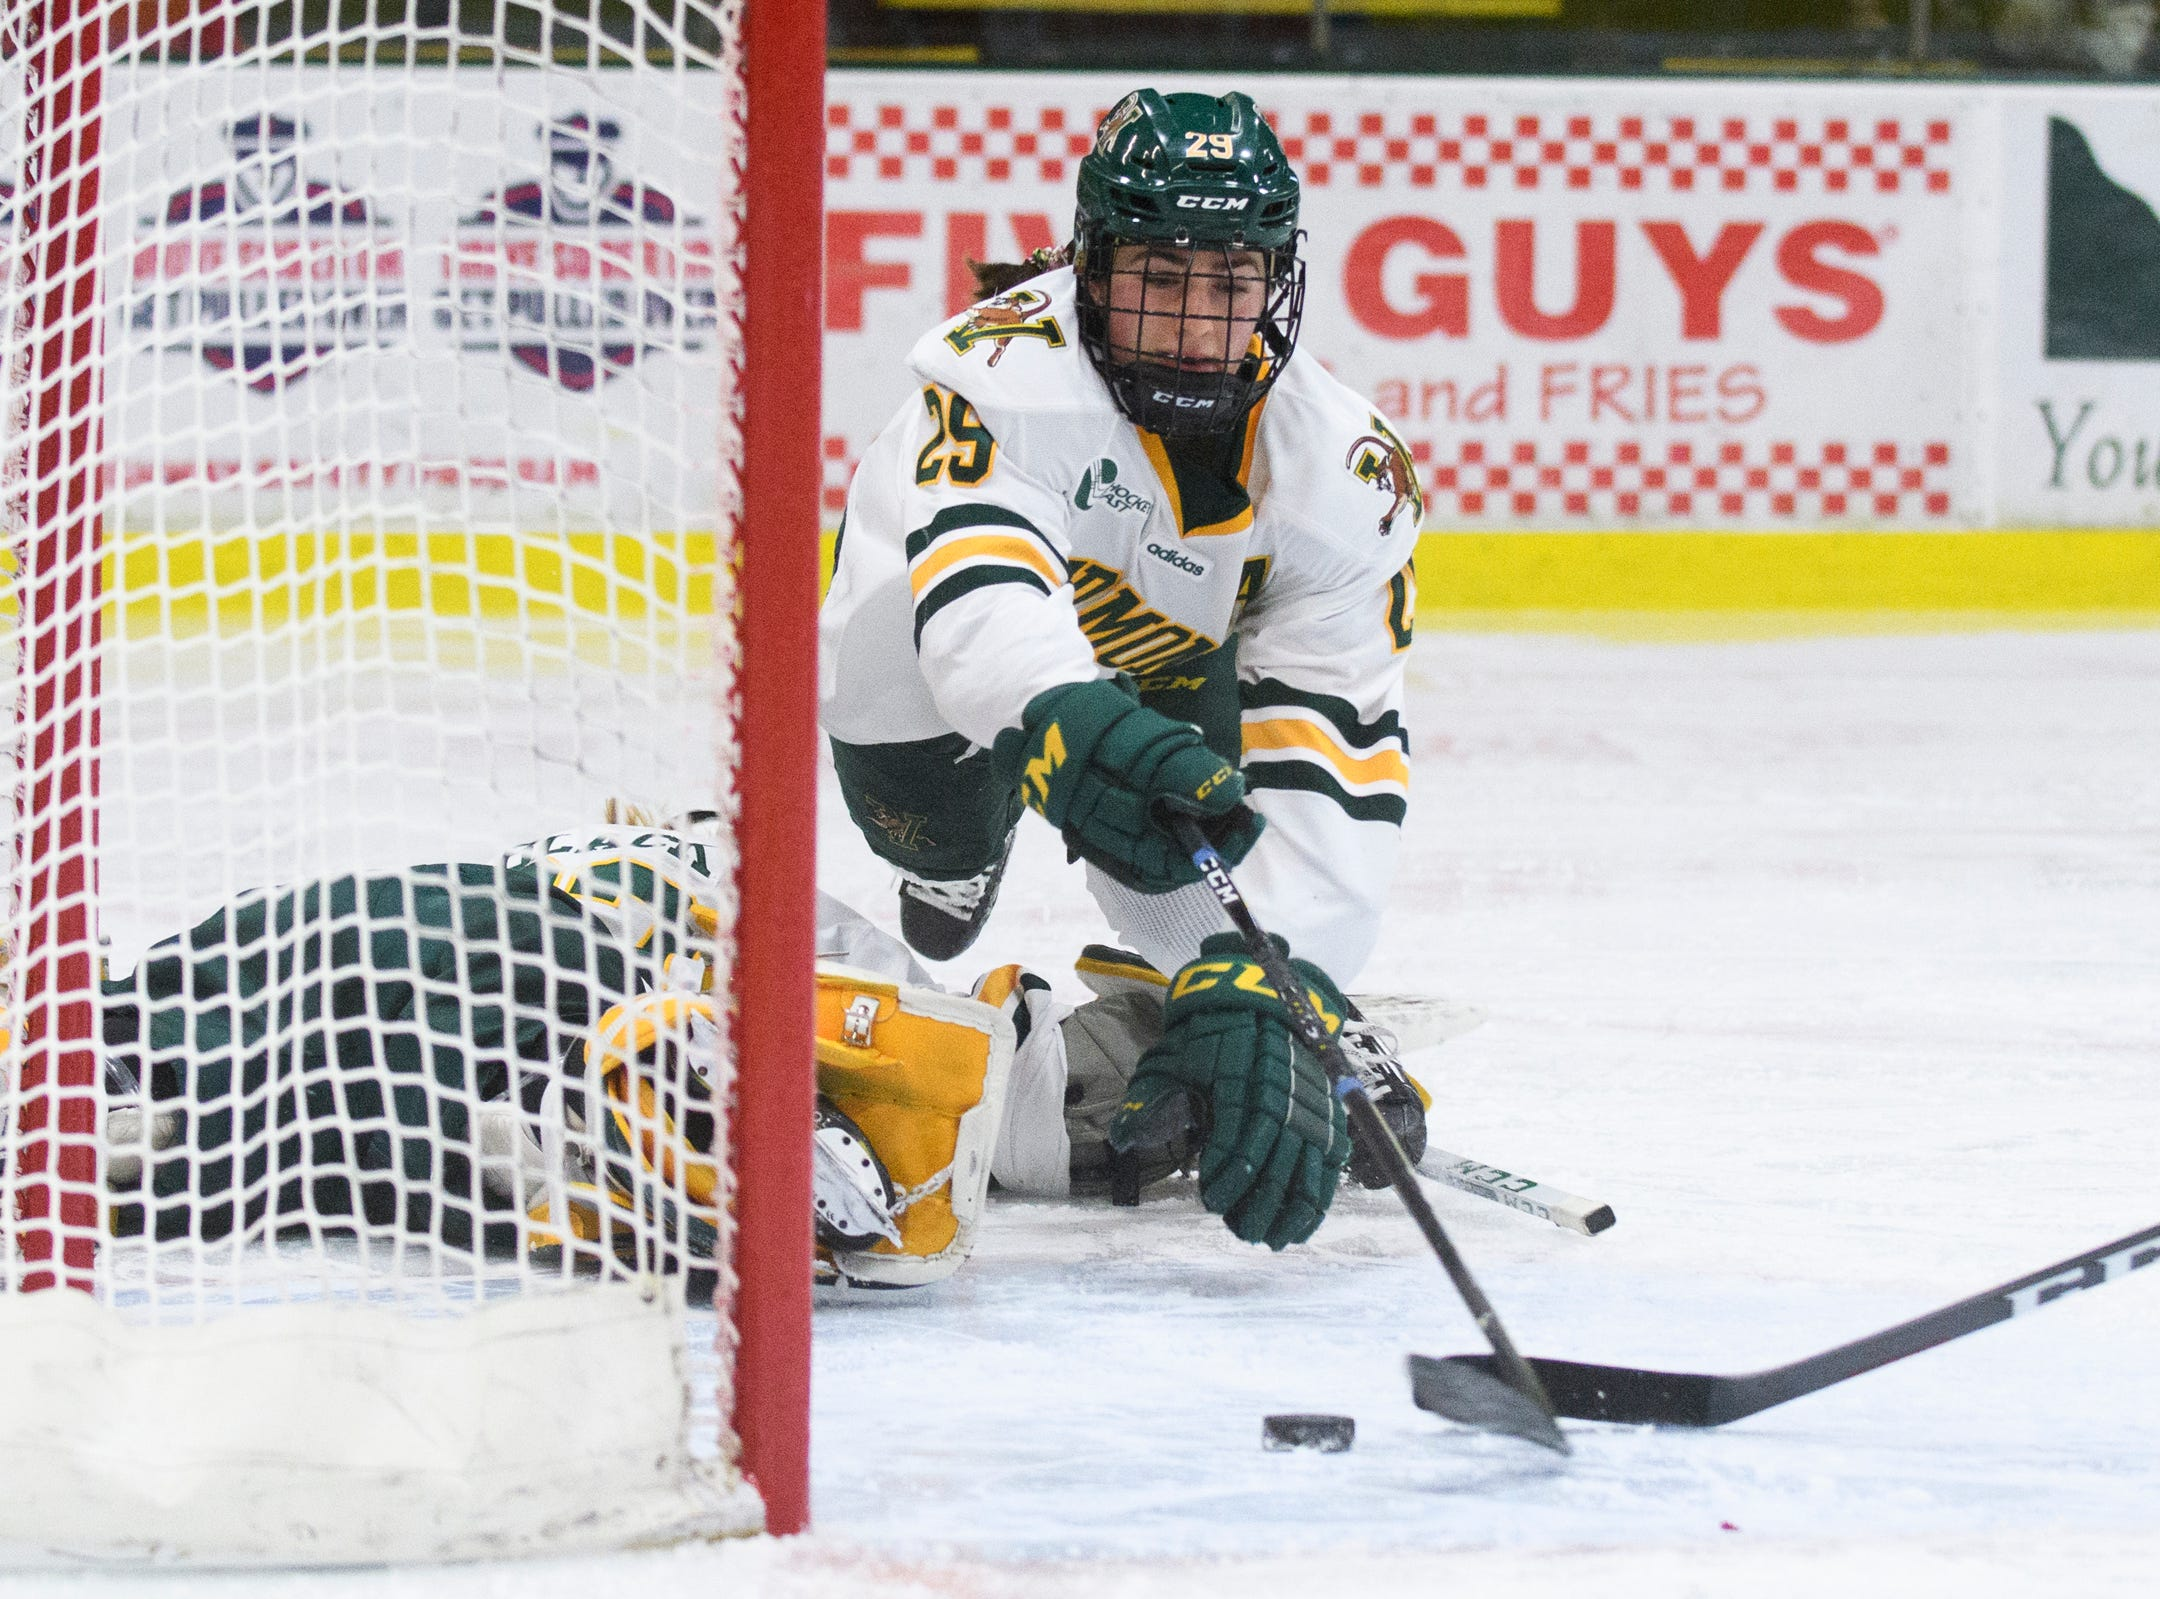 Vermont's Taylor Flaherty (29) tries to save the puck from going in the net during the women's hockey game between the Boston Terriers and the Vermont Catamounts at Gutterson Field House on Friday night February 1, 2019 in Burlington, Vermont.